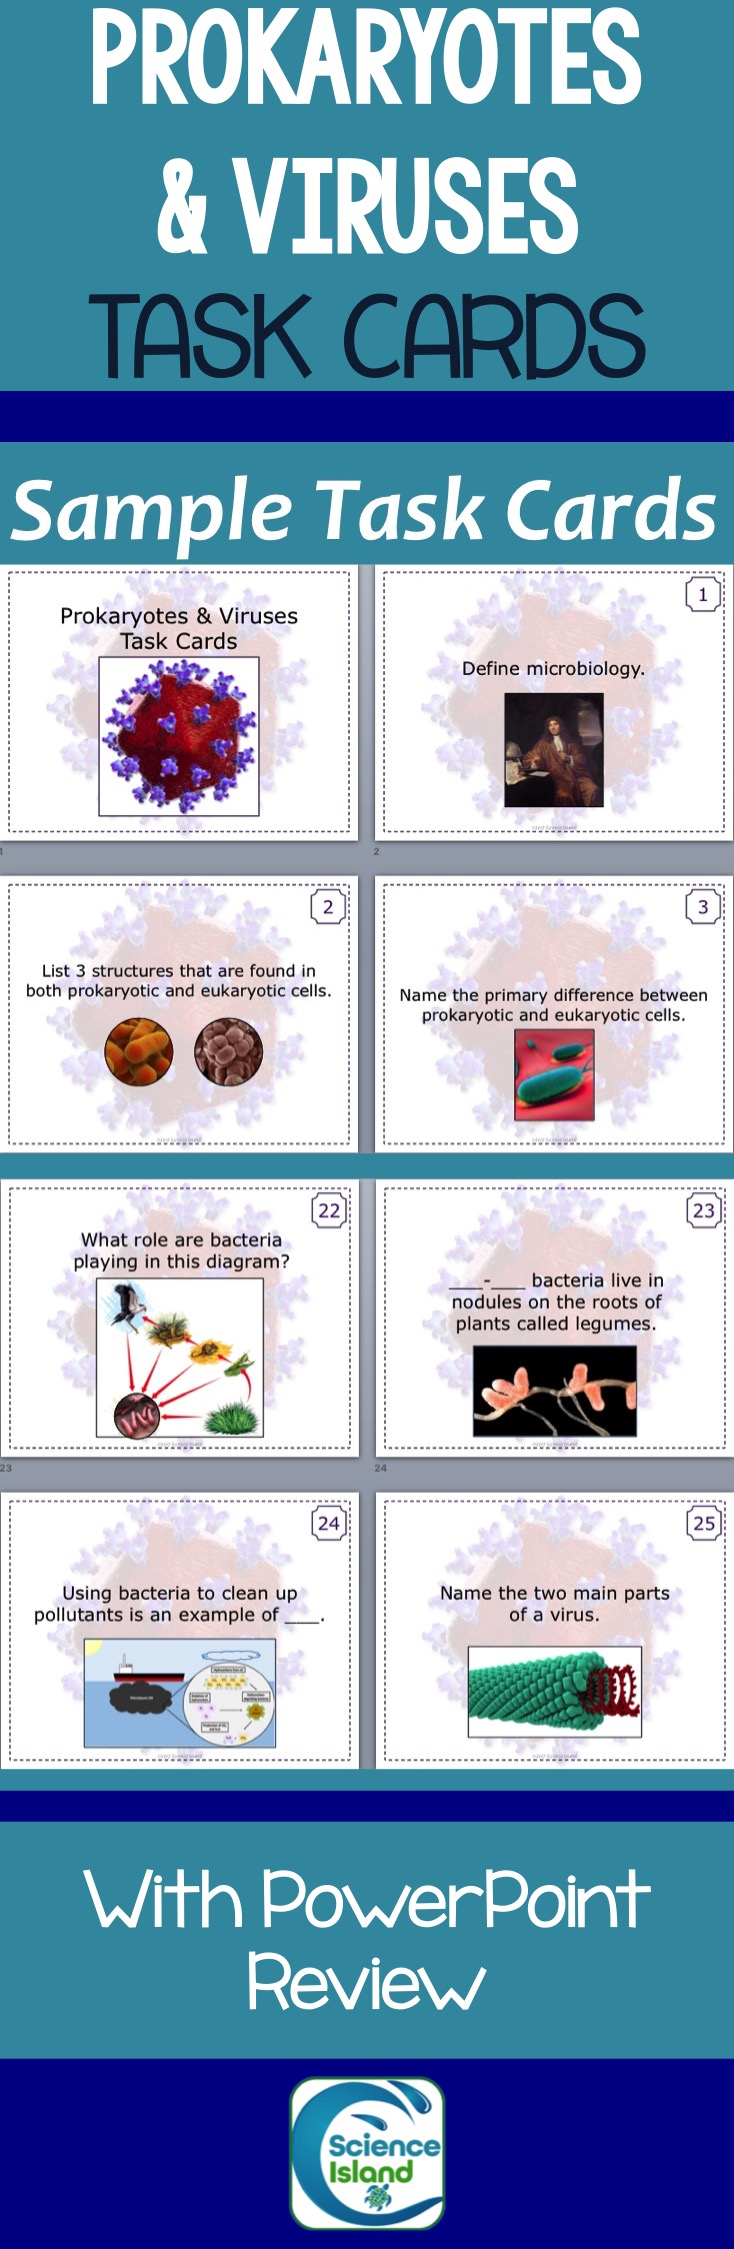 Prokaryotes And Viruses Task Cards With Powerpoint Review Prokaryotic Cells Are An Amazing Cooperative Learning Activity For Secondary Science Students This Set Covers